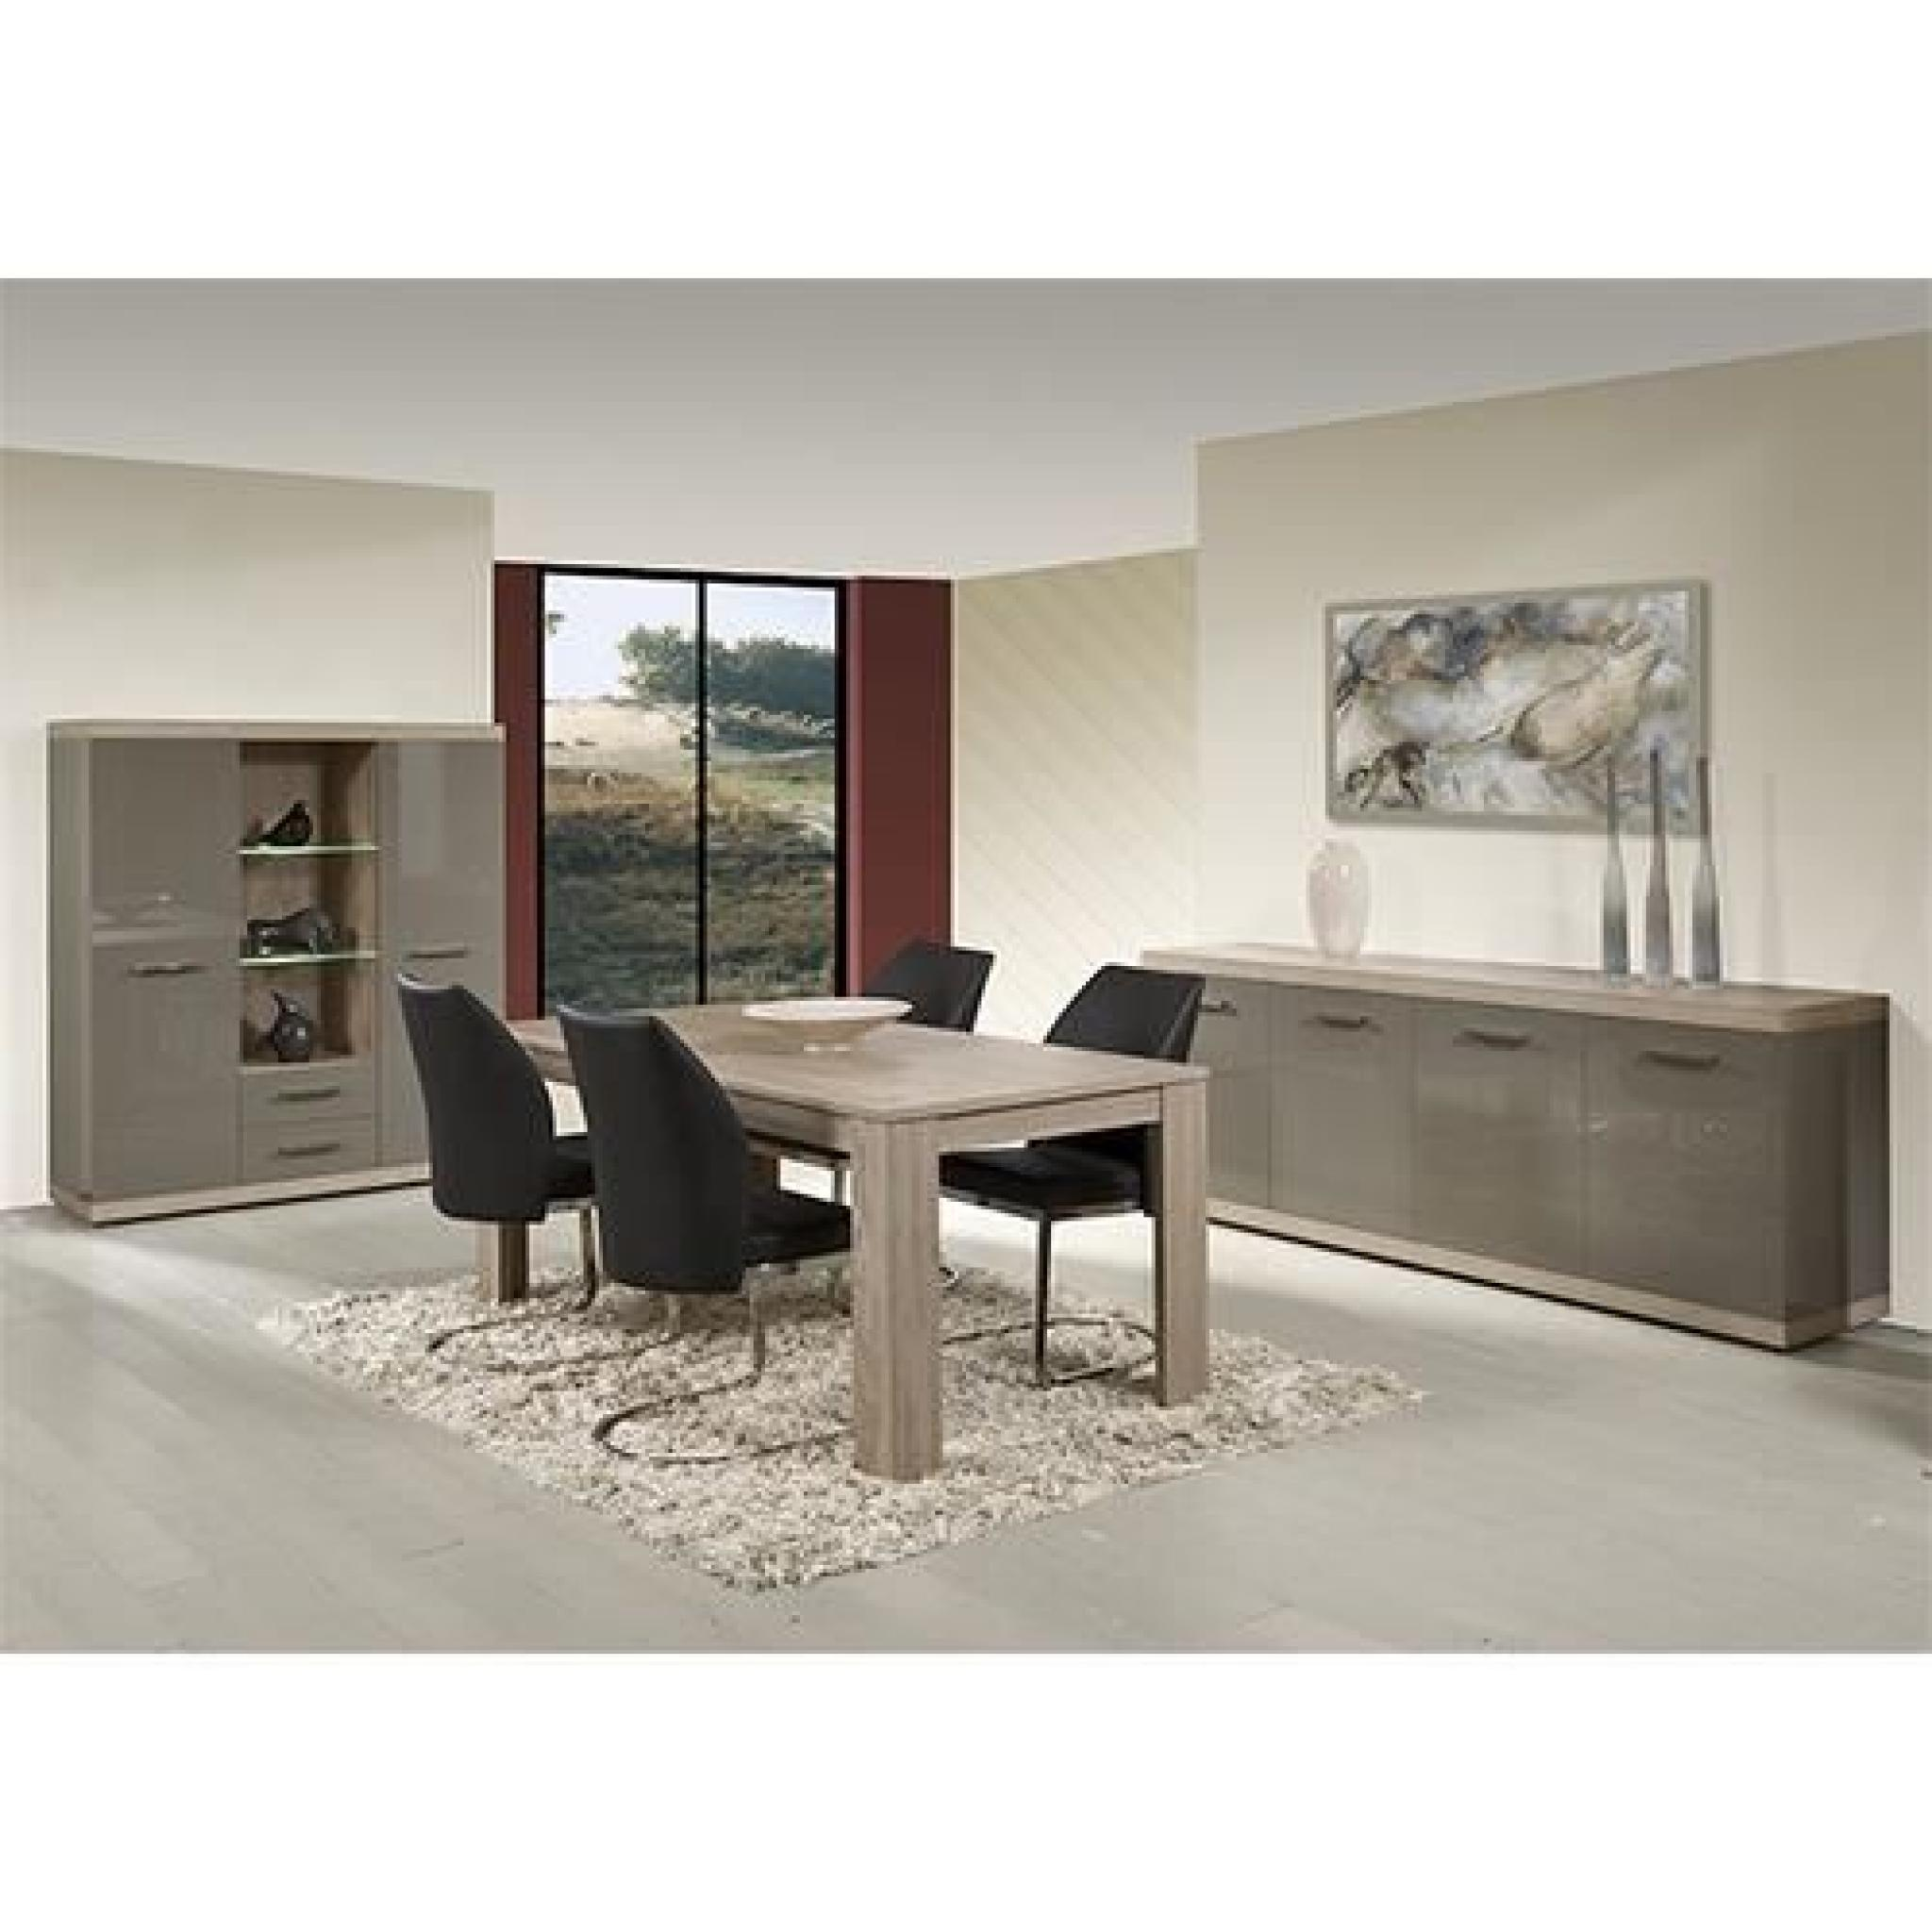 salle manger compl te gris laqu et couleur ch ne clair. Black Bedroom Furniture Sets. Home Design Ideas